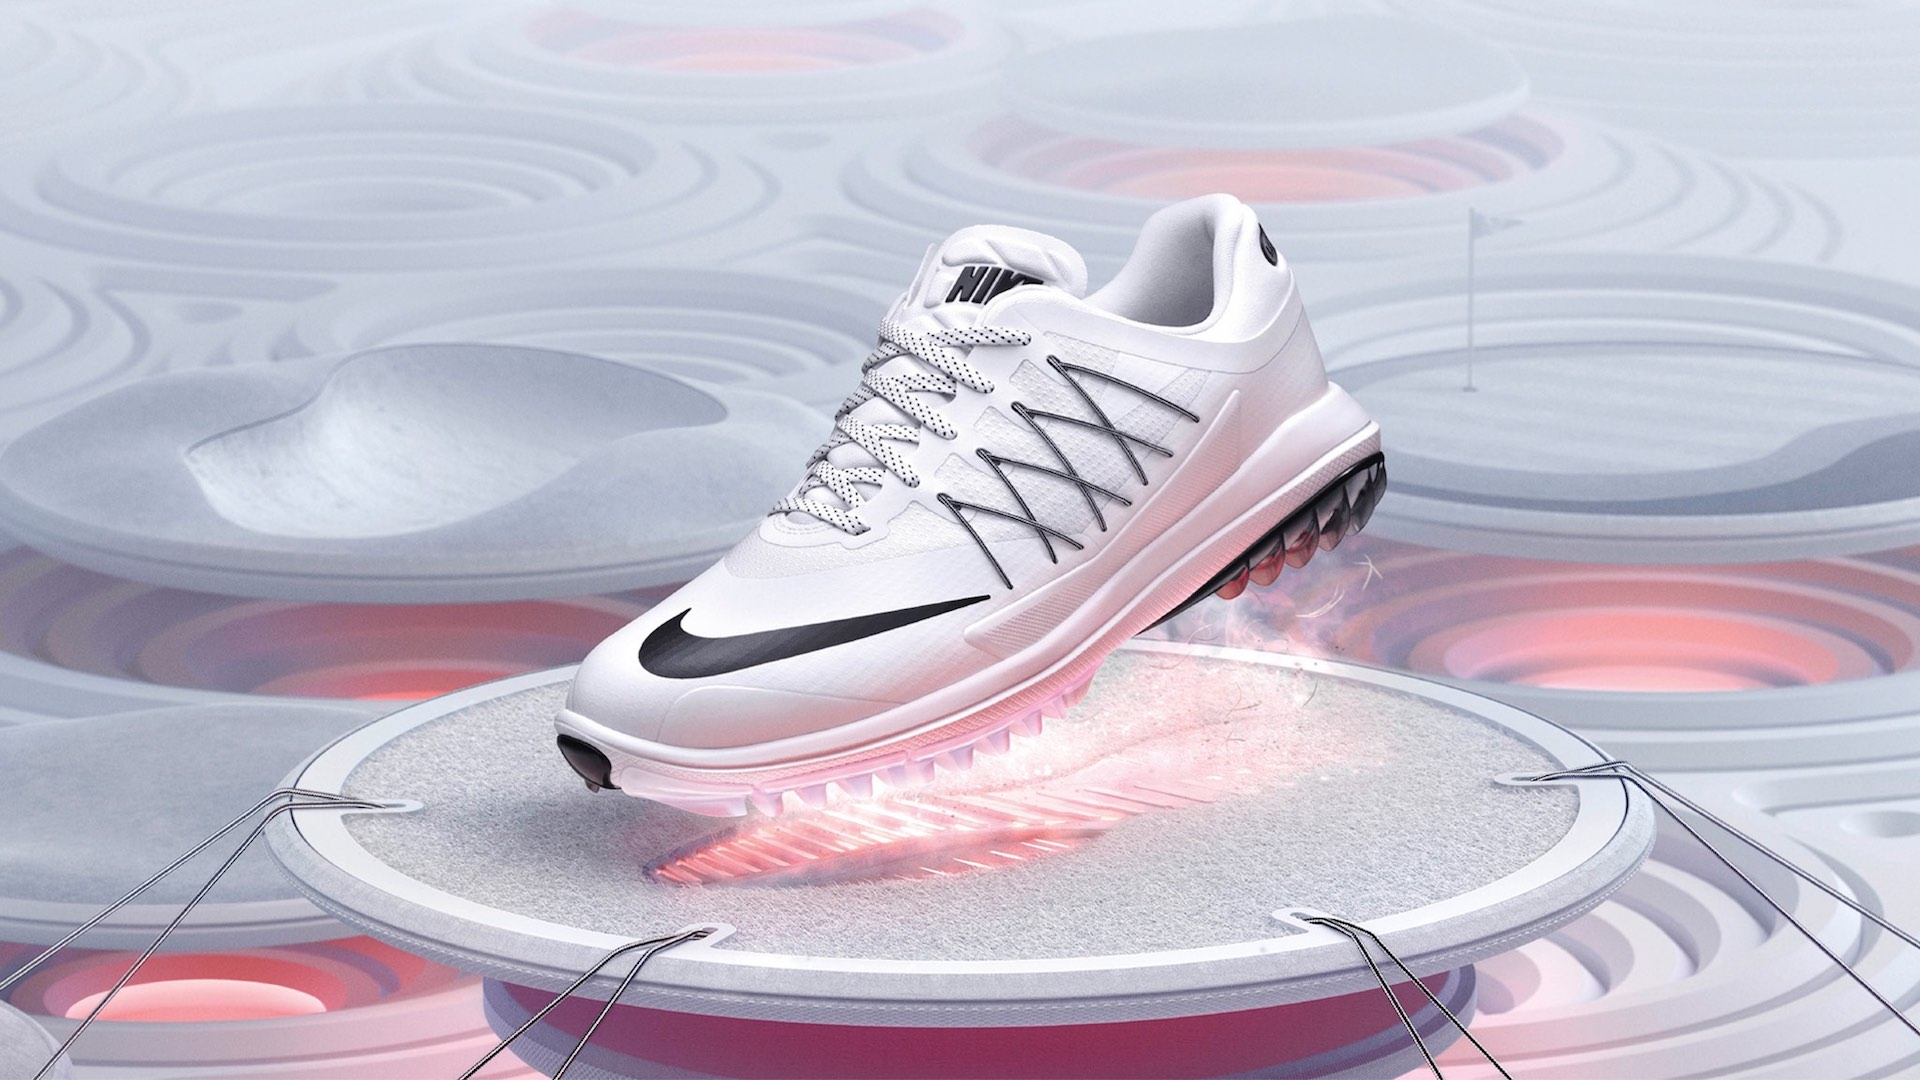 Rory McIlroy tees it with Nike Lunar Control